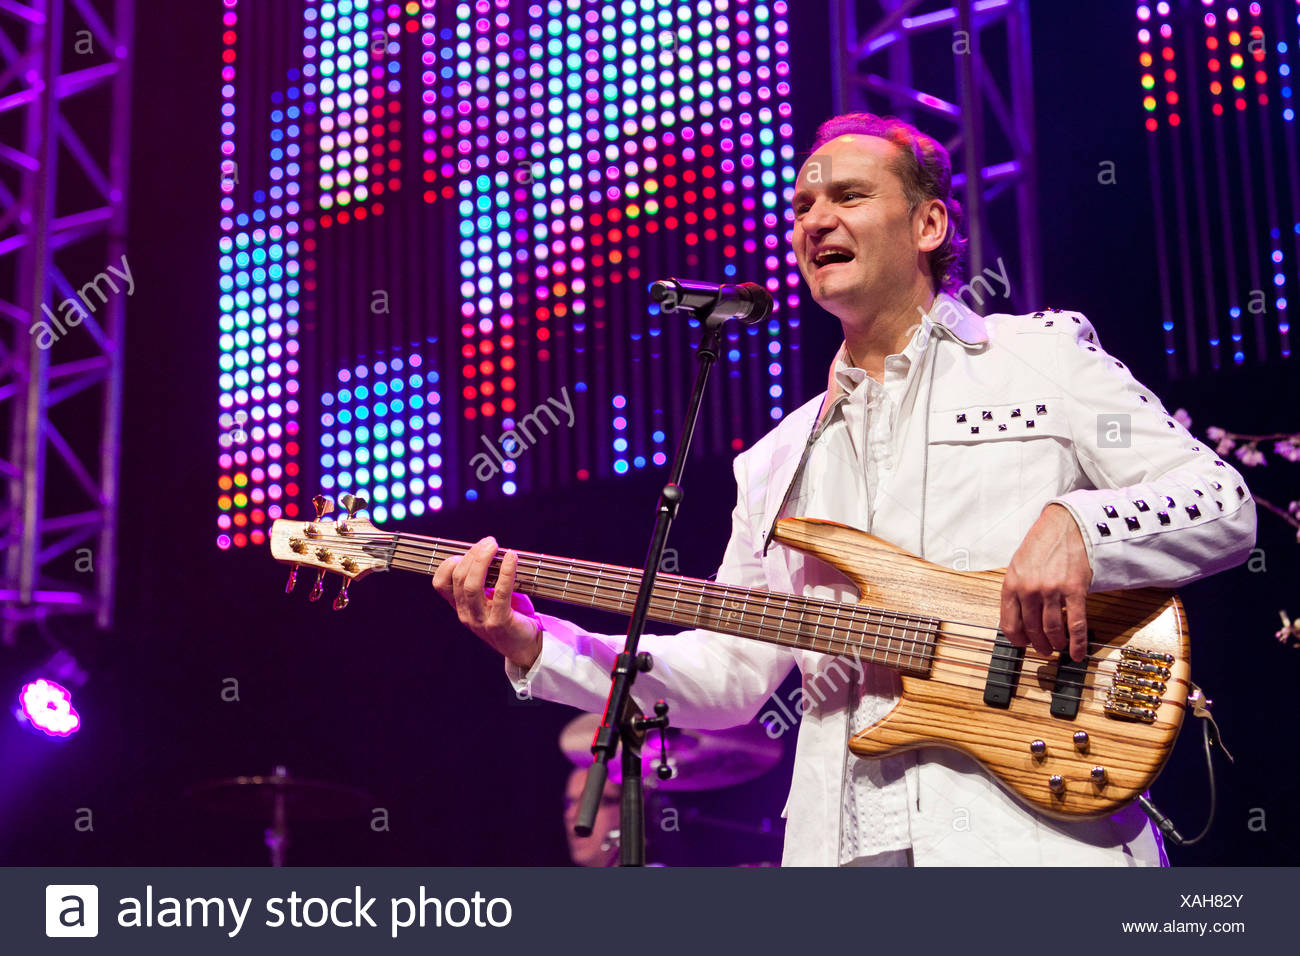 Harry Muster of the Austrian pop band 'Die Paldauer' performing live at the Schlager Nacht 2012, pop music event, in Lucerne - Stock Image